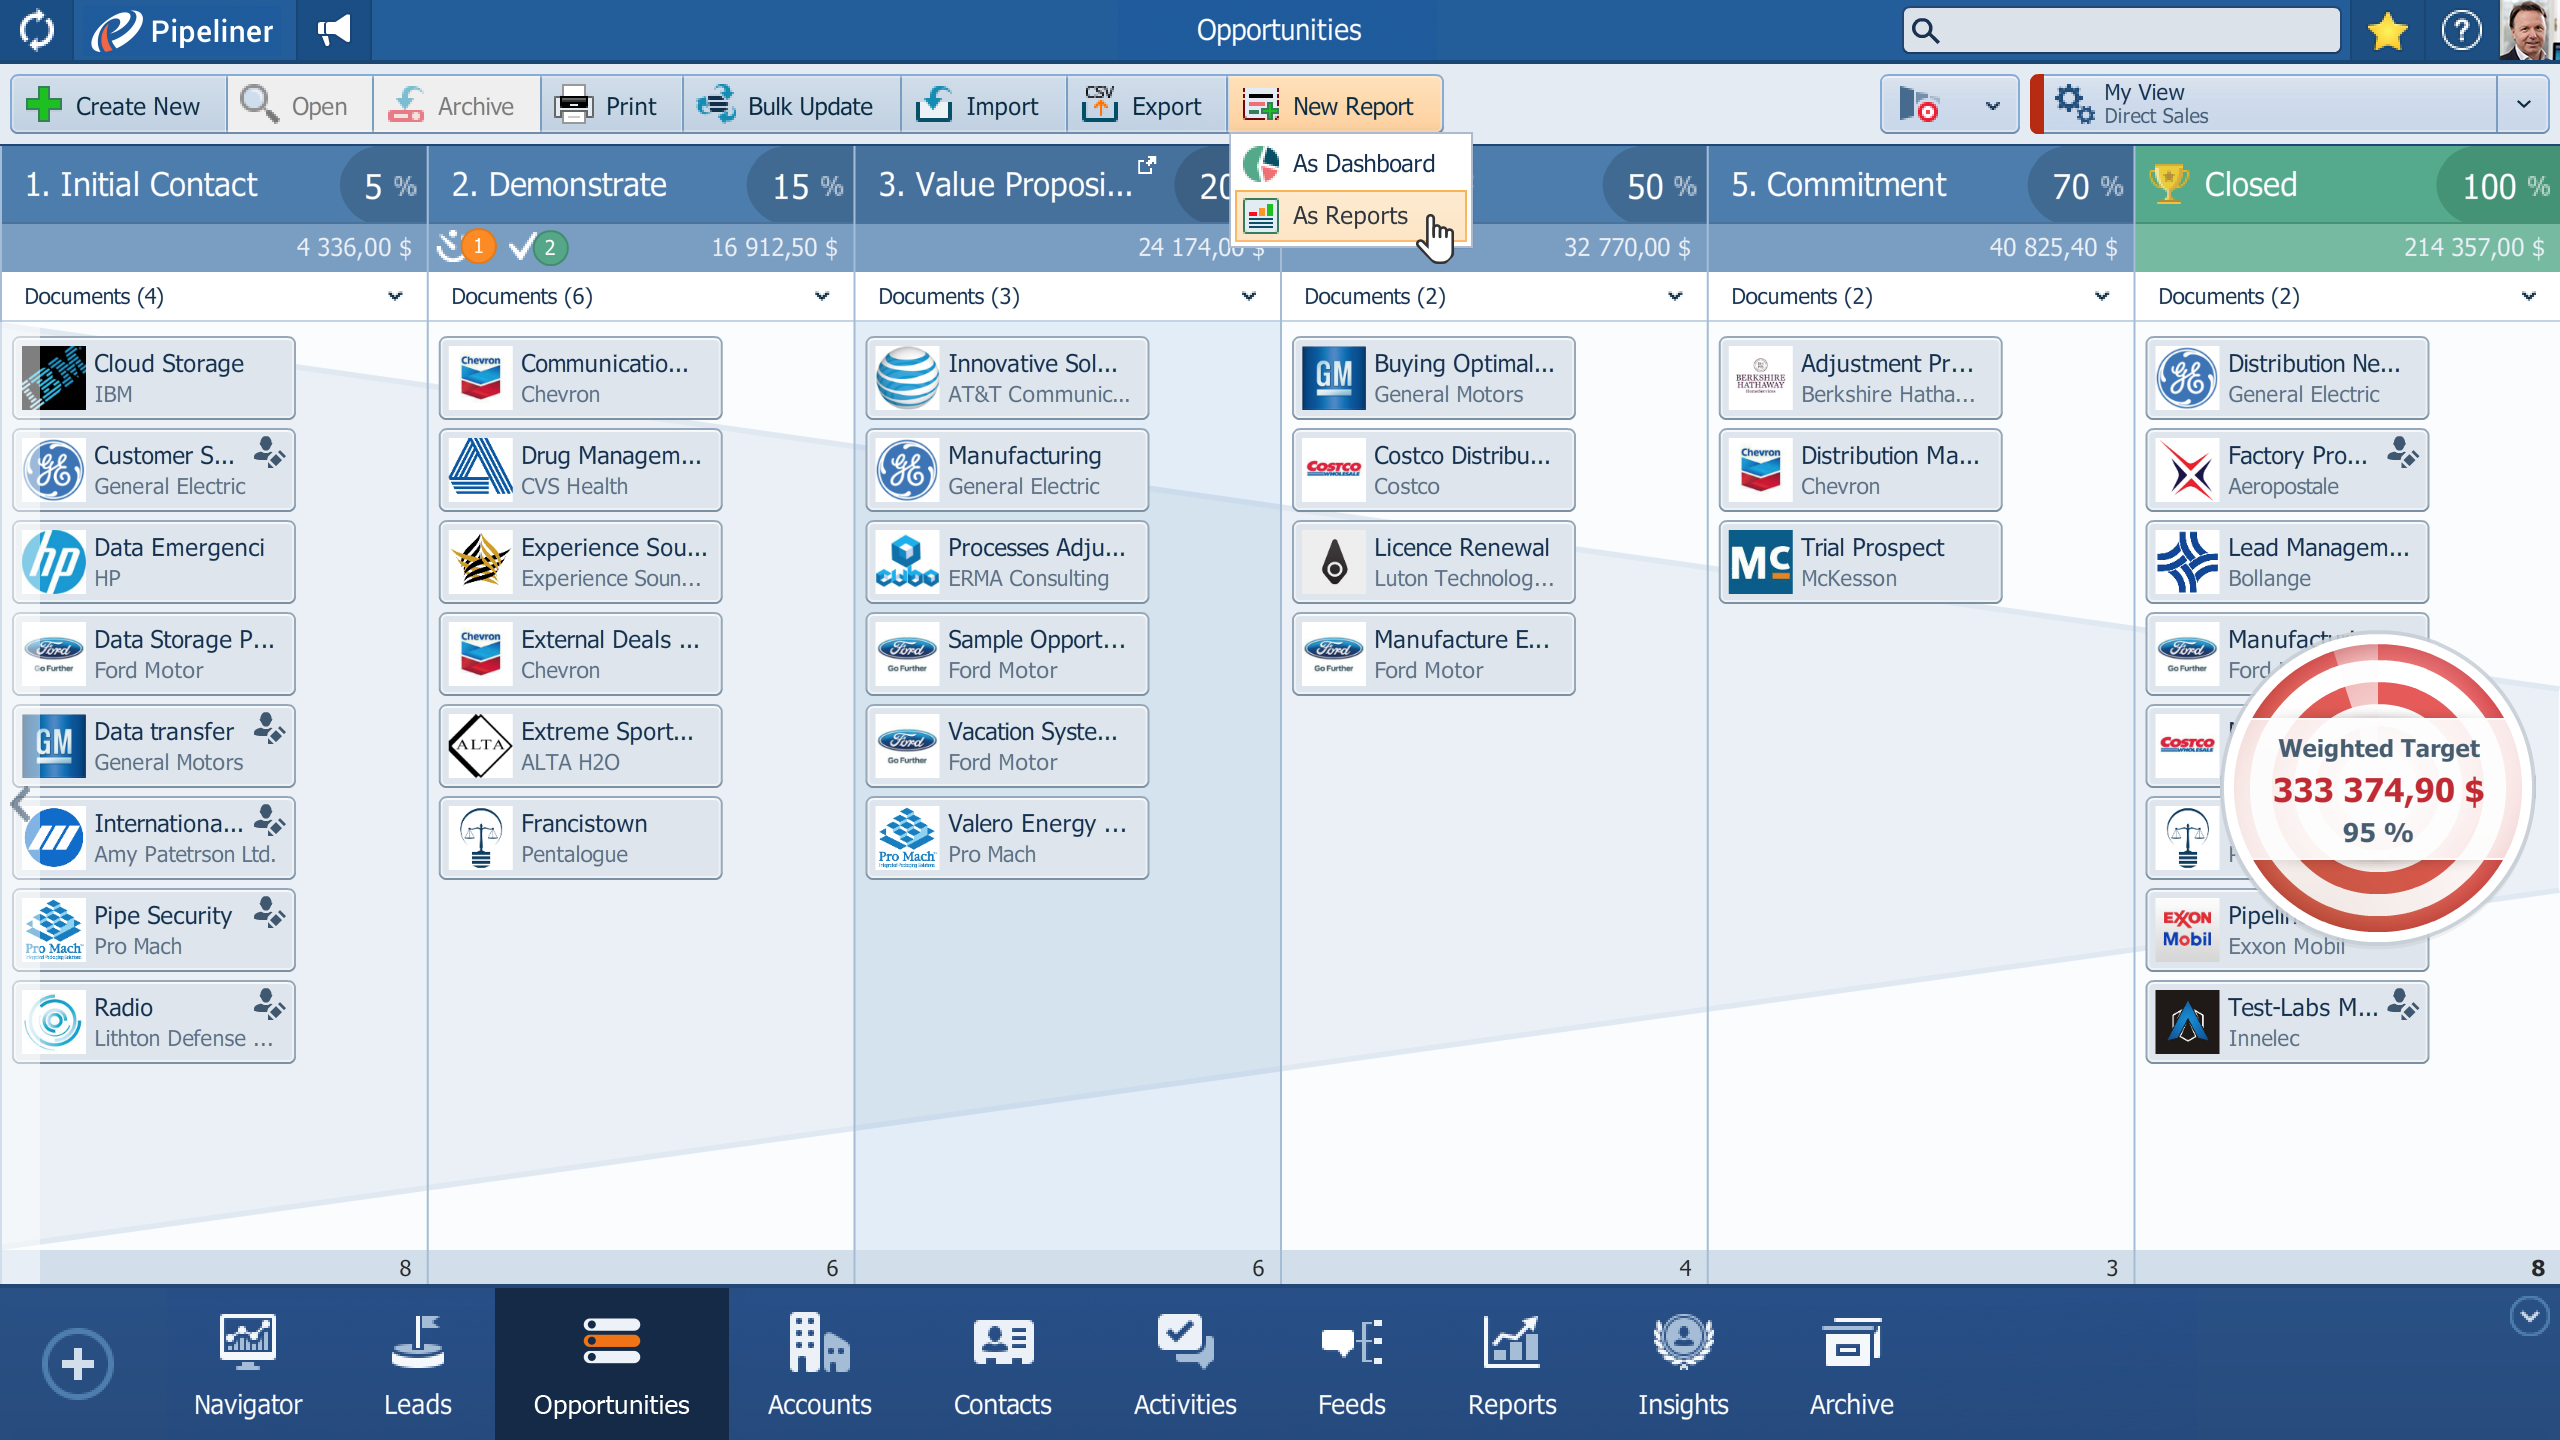 When you log in to Pipeliner CRM, you are automatically given a visual of your sales pipeline. Creating a new note, lead, account, contact, opportunity or activity can be easily done via the Create menu